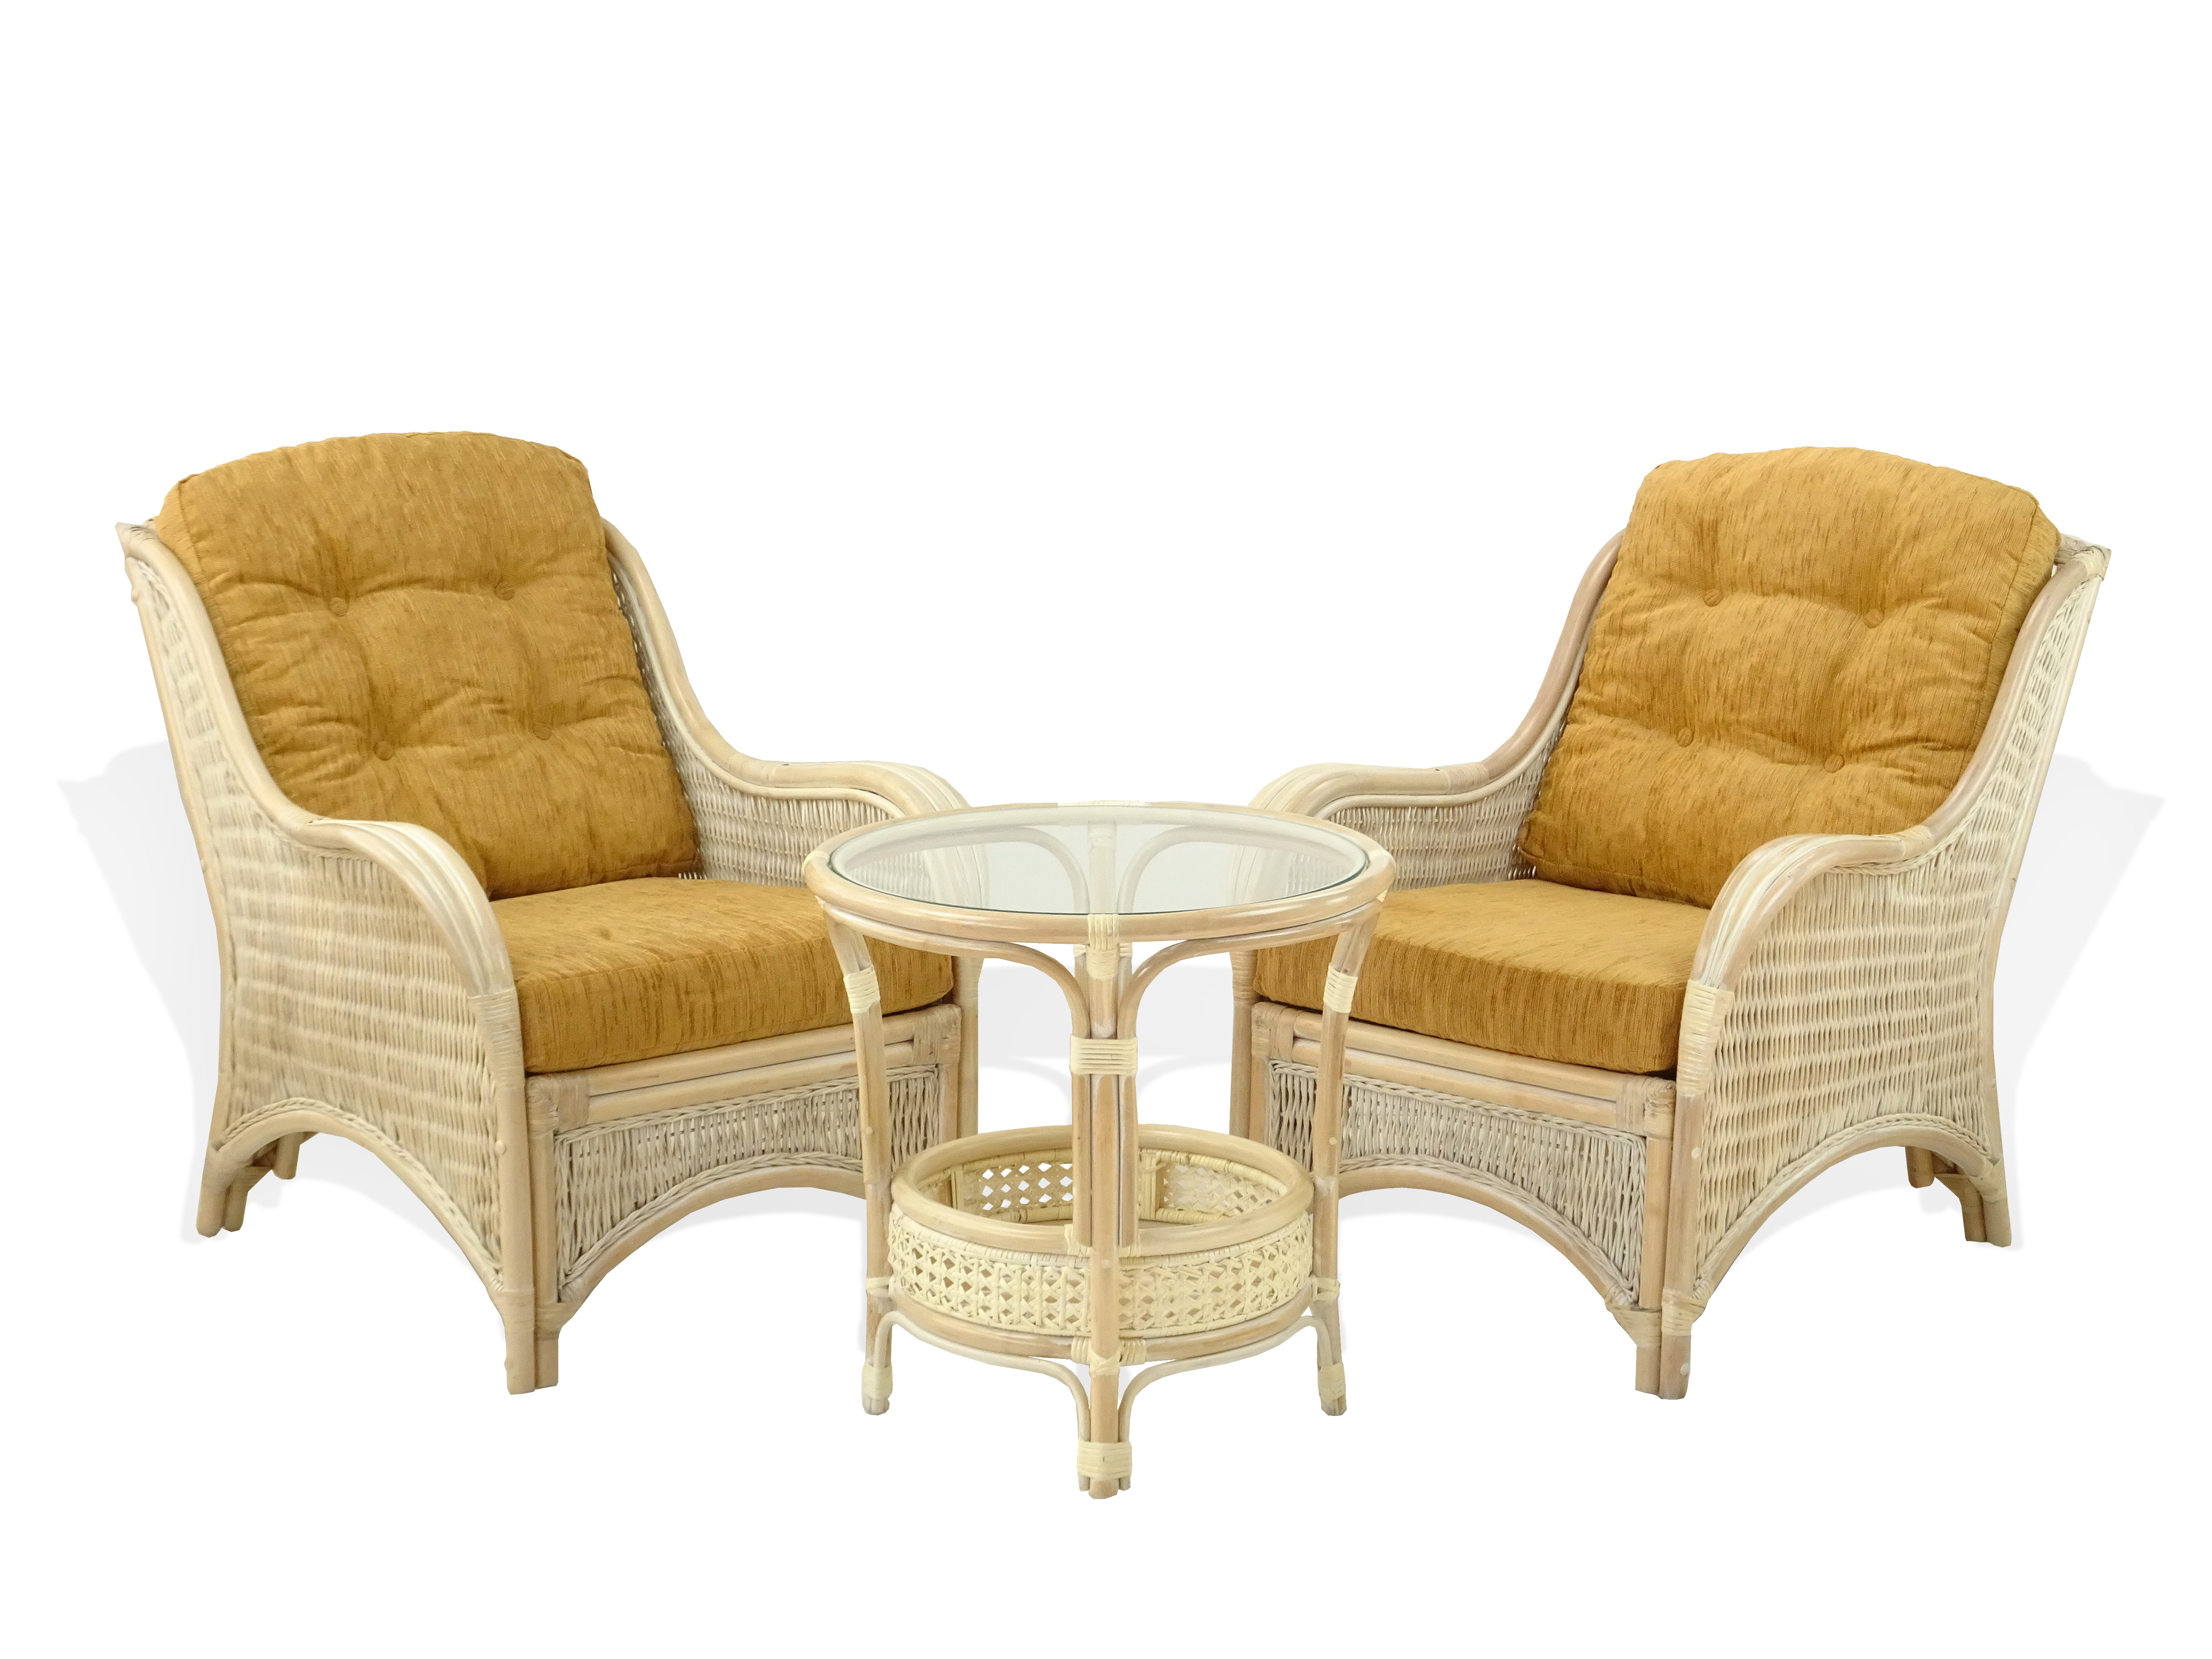 Buy Natural Rattan Wicker Jam Chairs W Light Brown